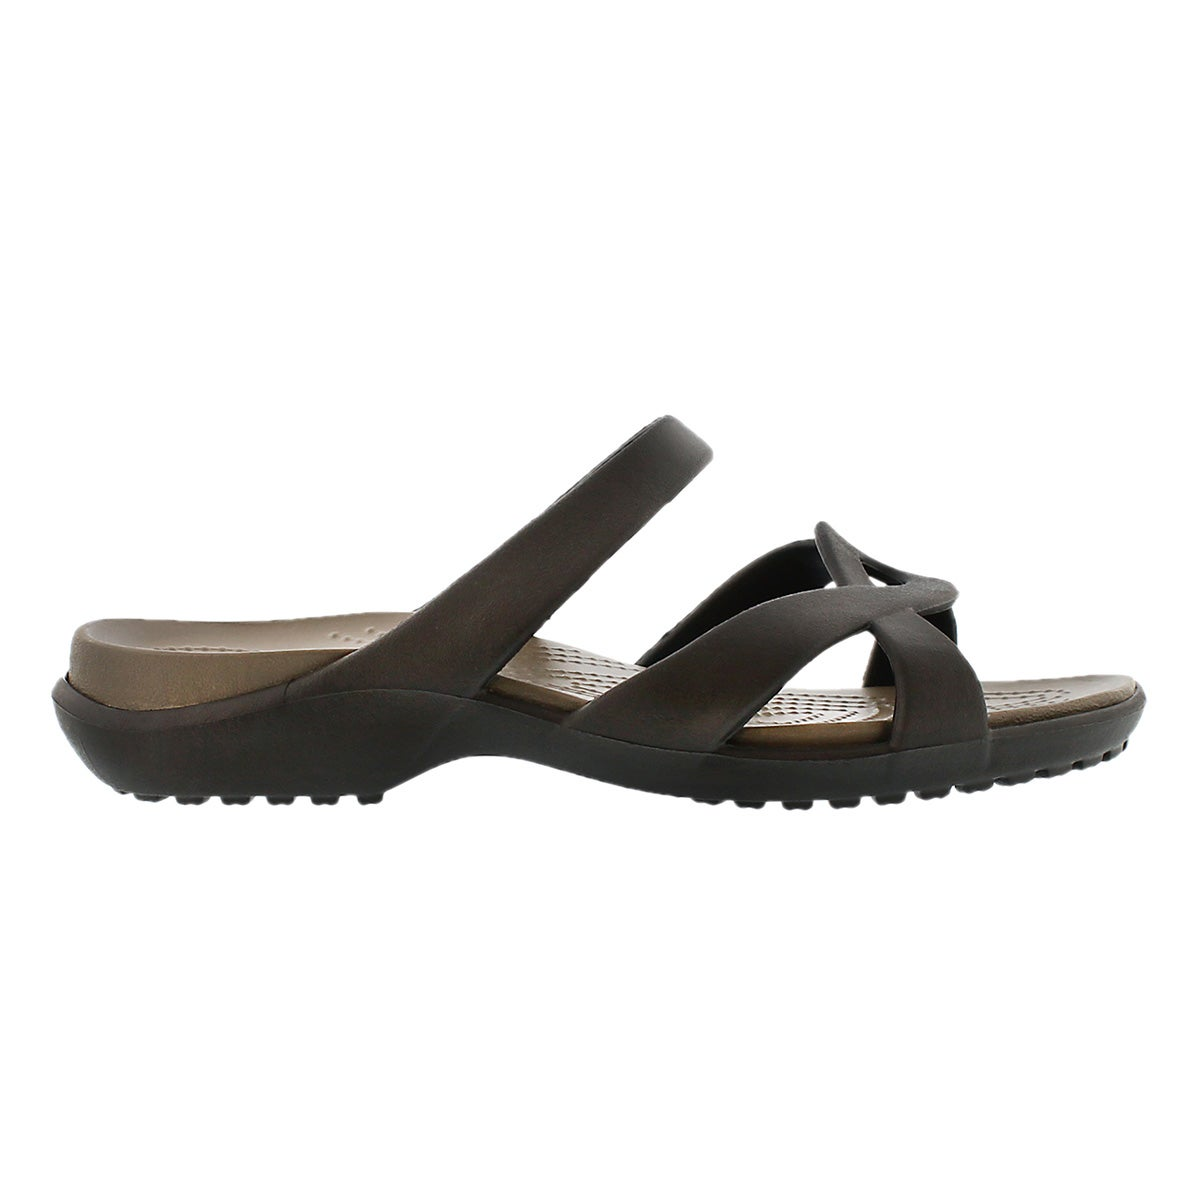 Lds Meleen Twist espresso casual sandal